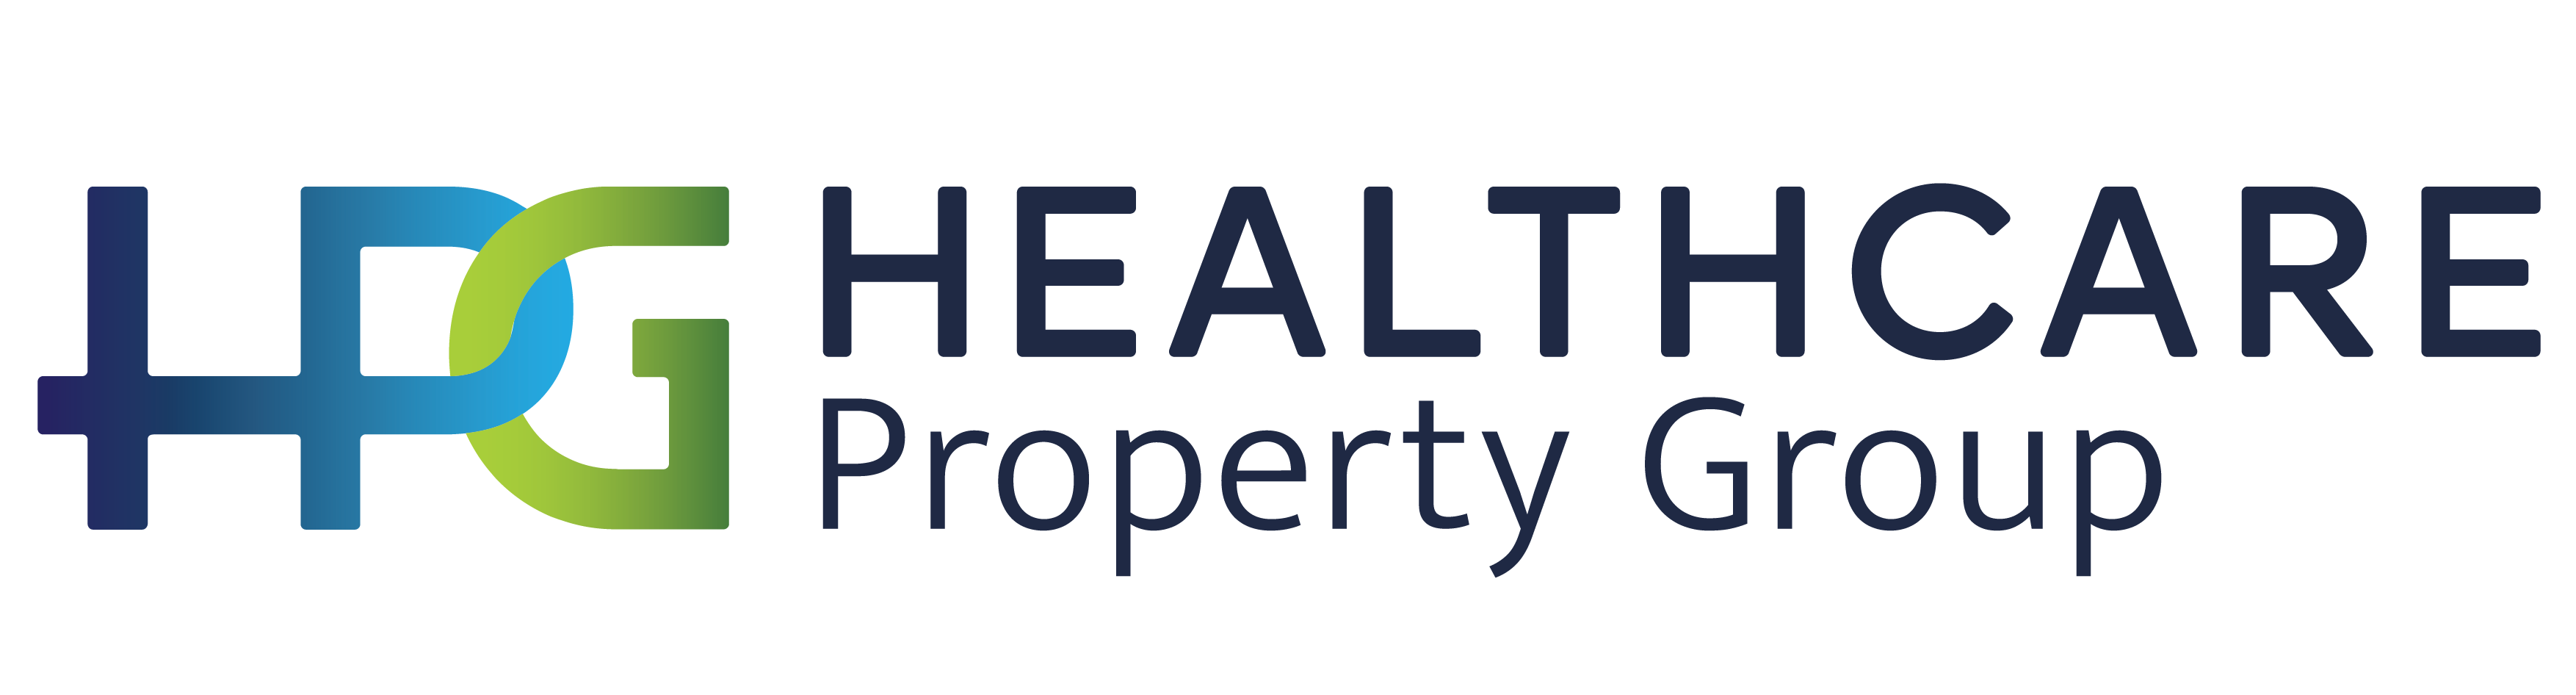 Healthcare Property Group